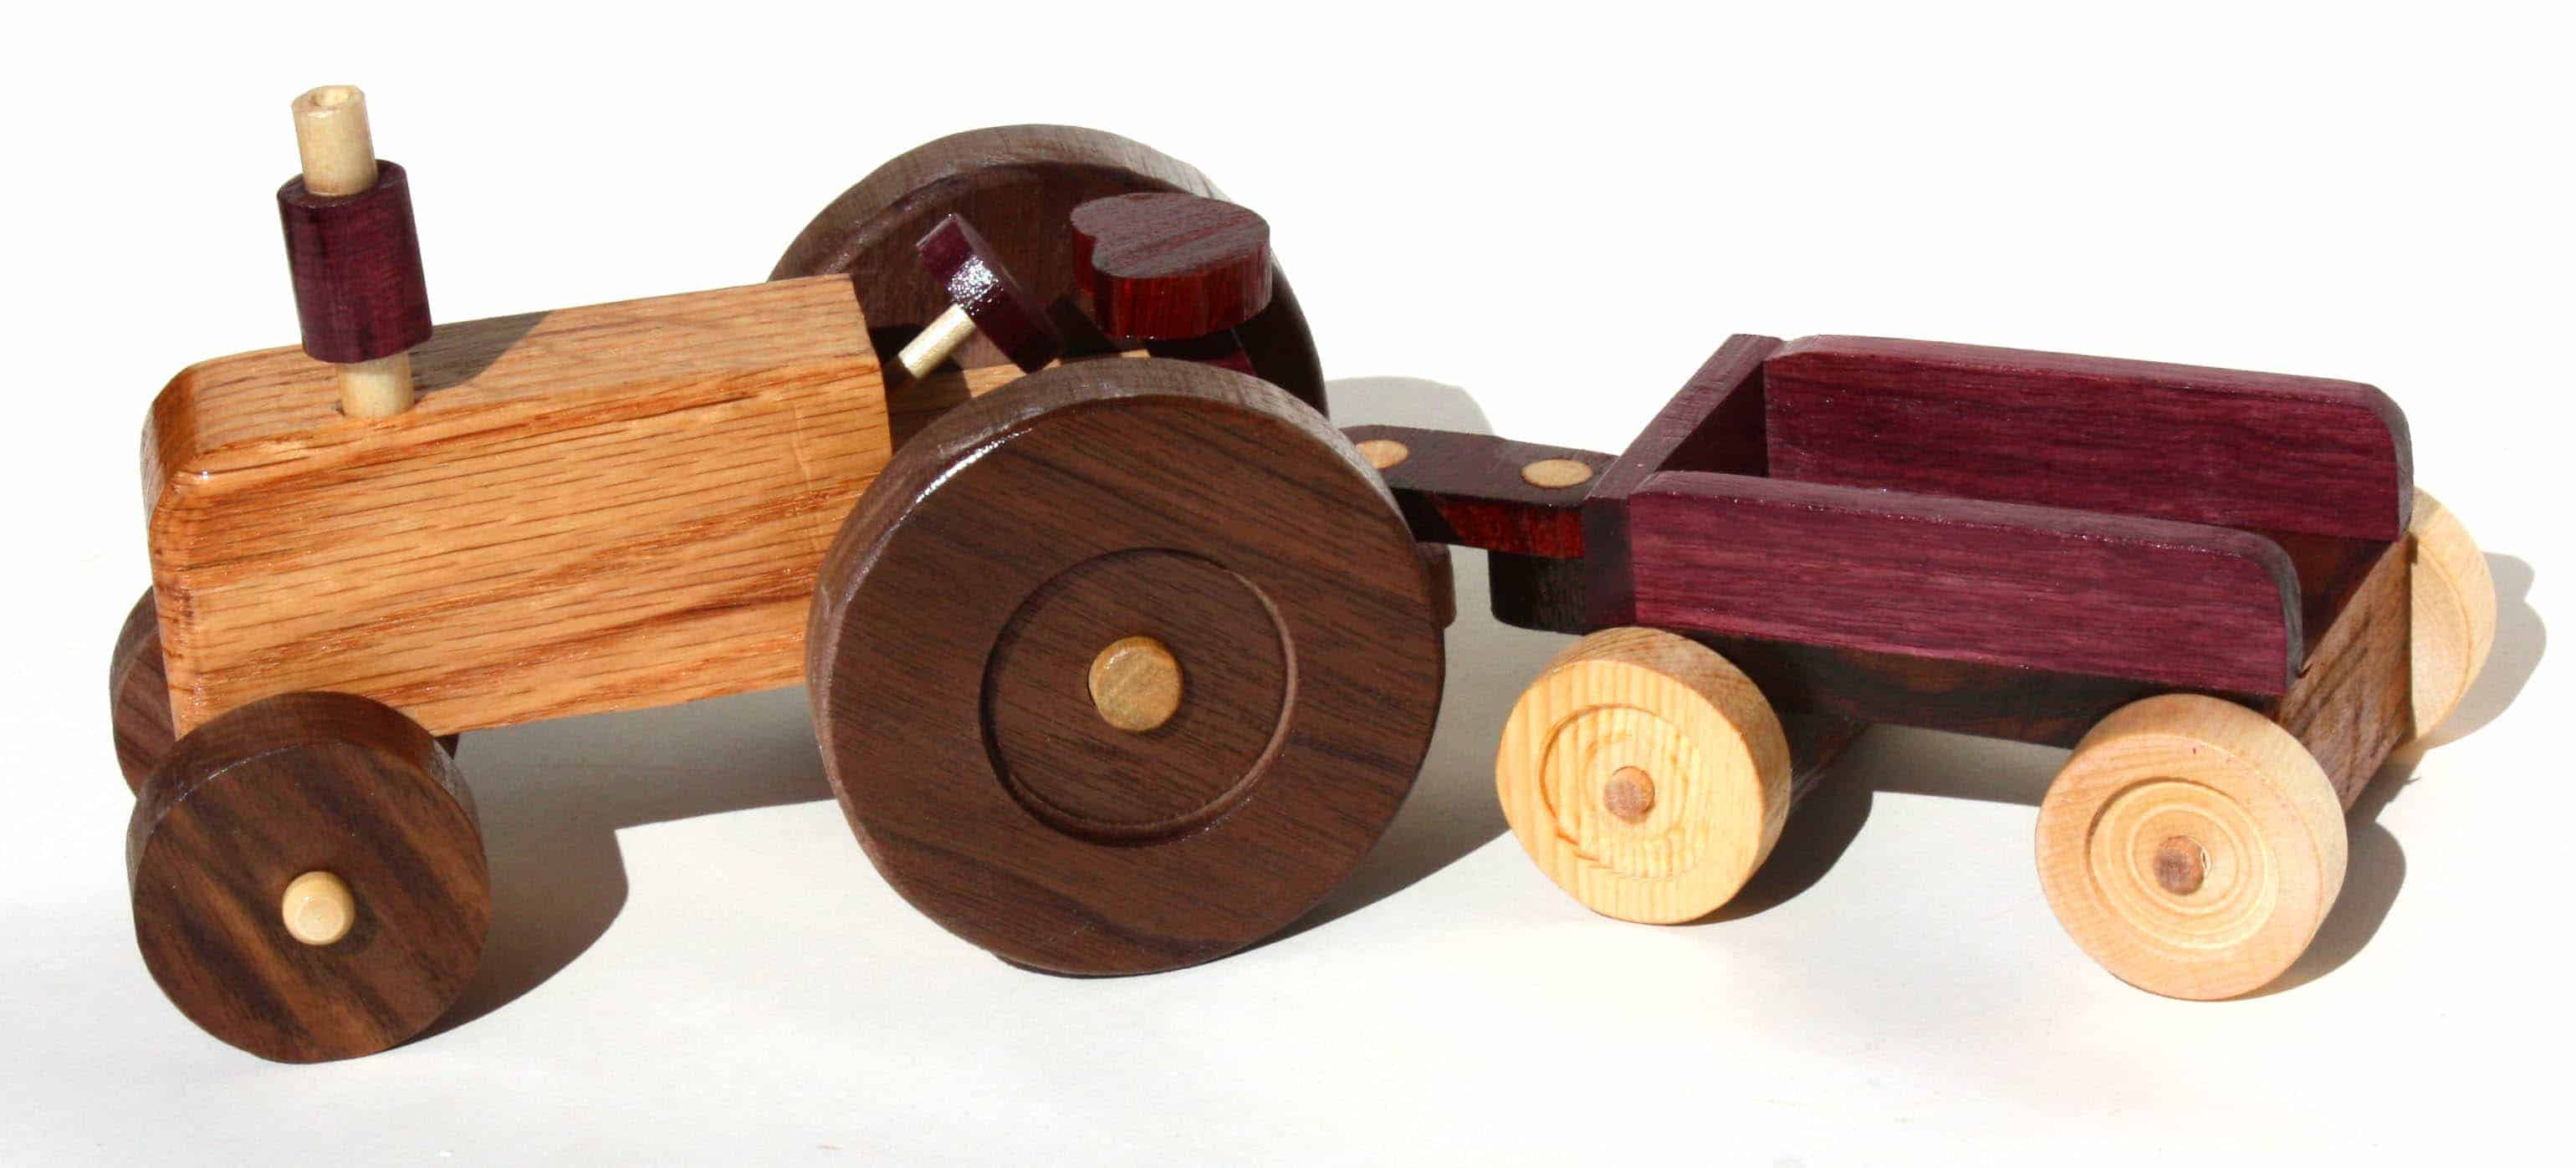 Wooden Toy Patterns Awesome Inspiration Design